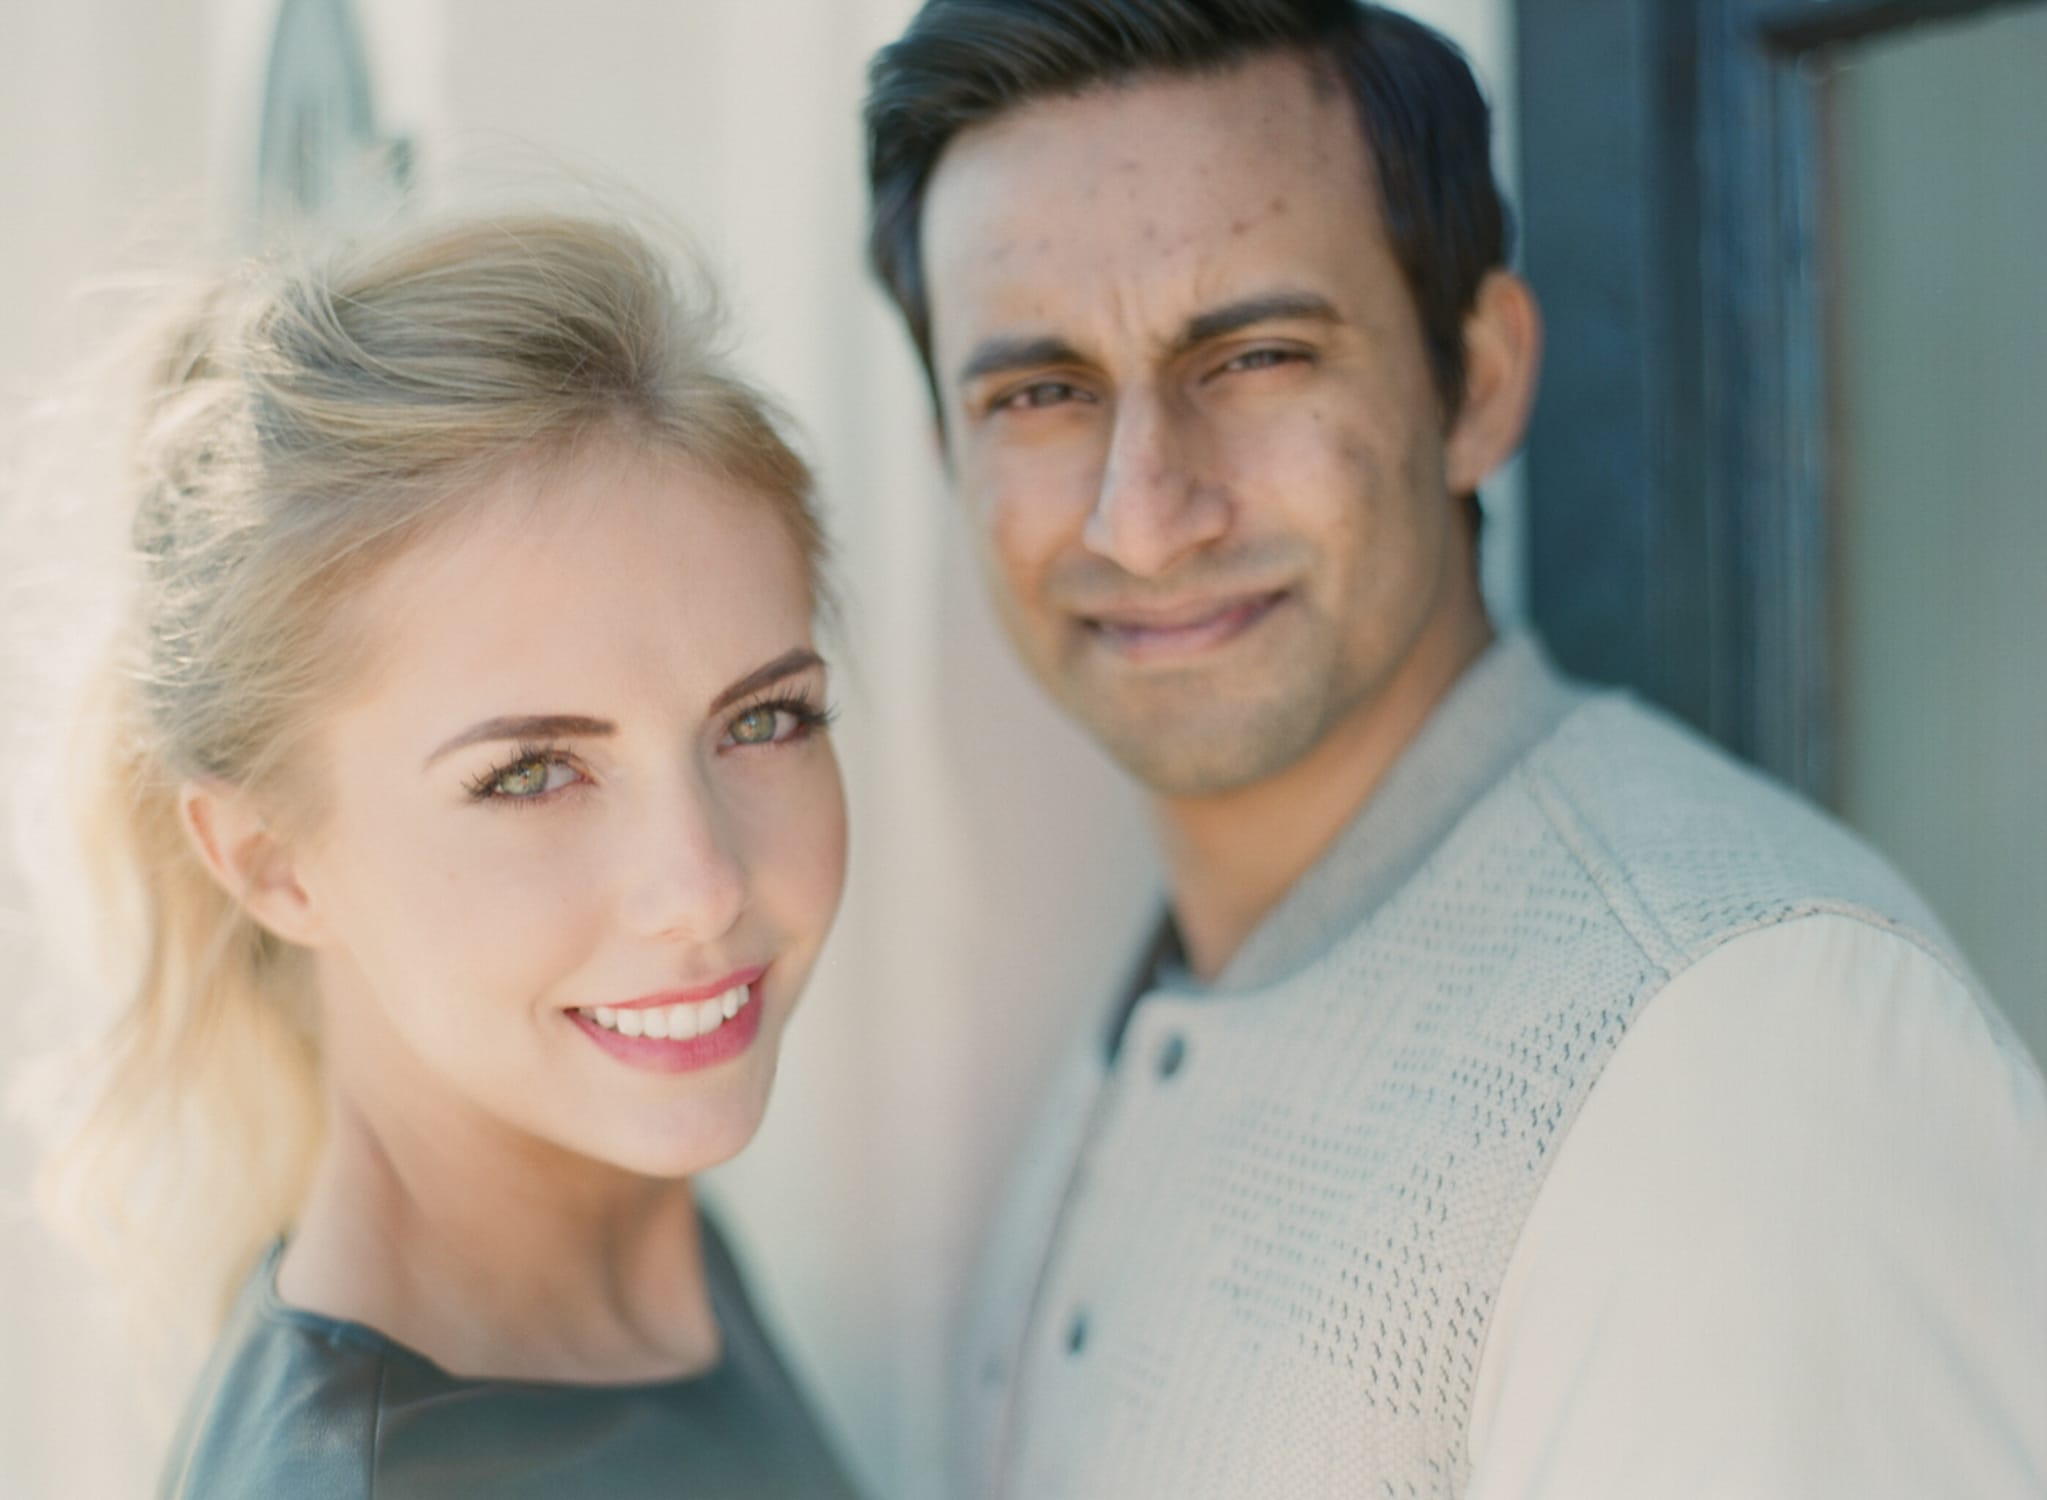 ONE_ELEVEN_EAST_MODERN_ENGAGEMENT_SHOOT_AUSTIN_TX_BY_MATTHEW_MOORE_PHOTOGRAPHY_00179.jpg